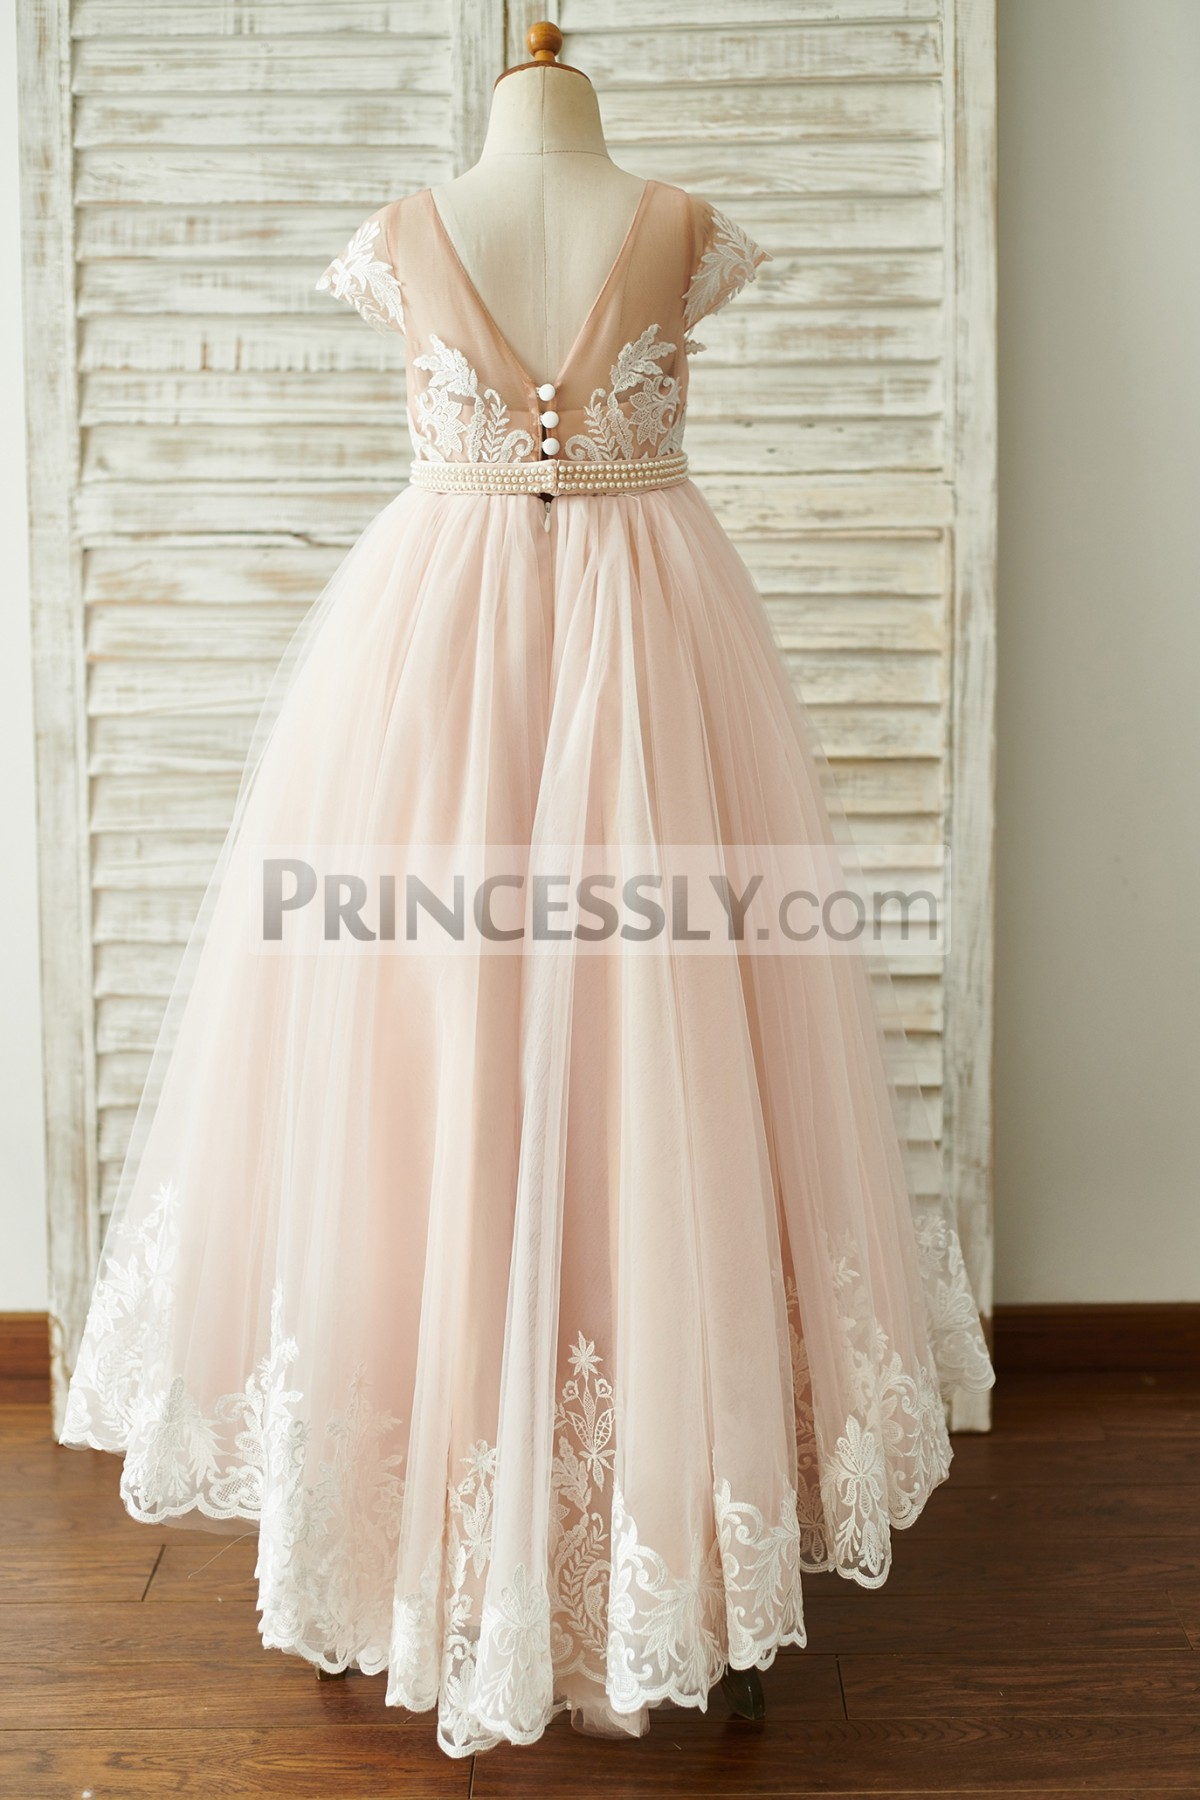 Deep V Back Lace Tulle Floor Length Wedding Baby Girl Dress